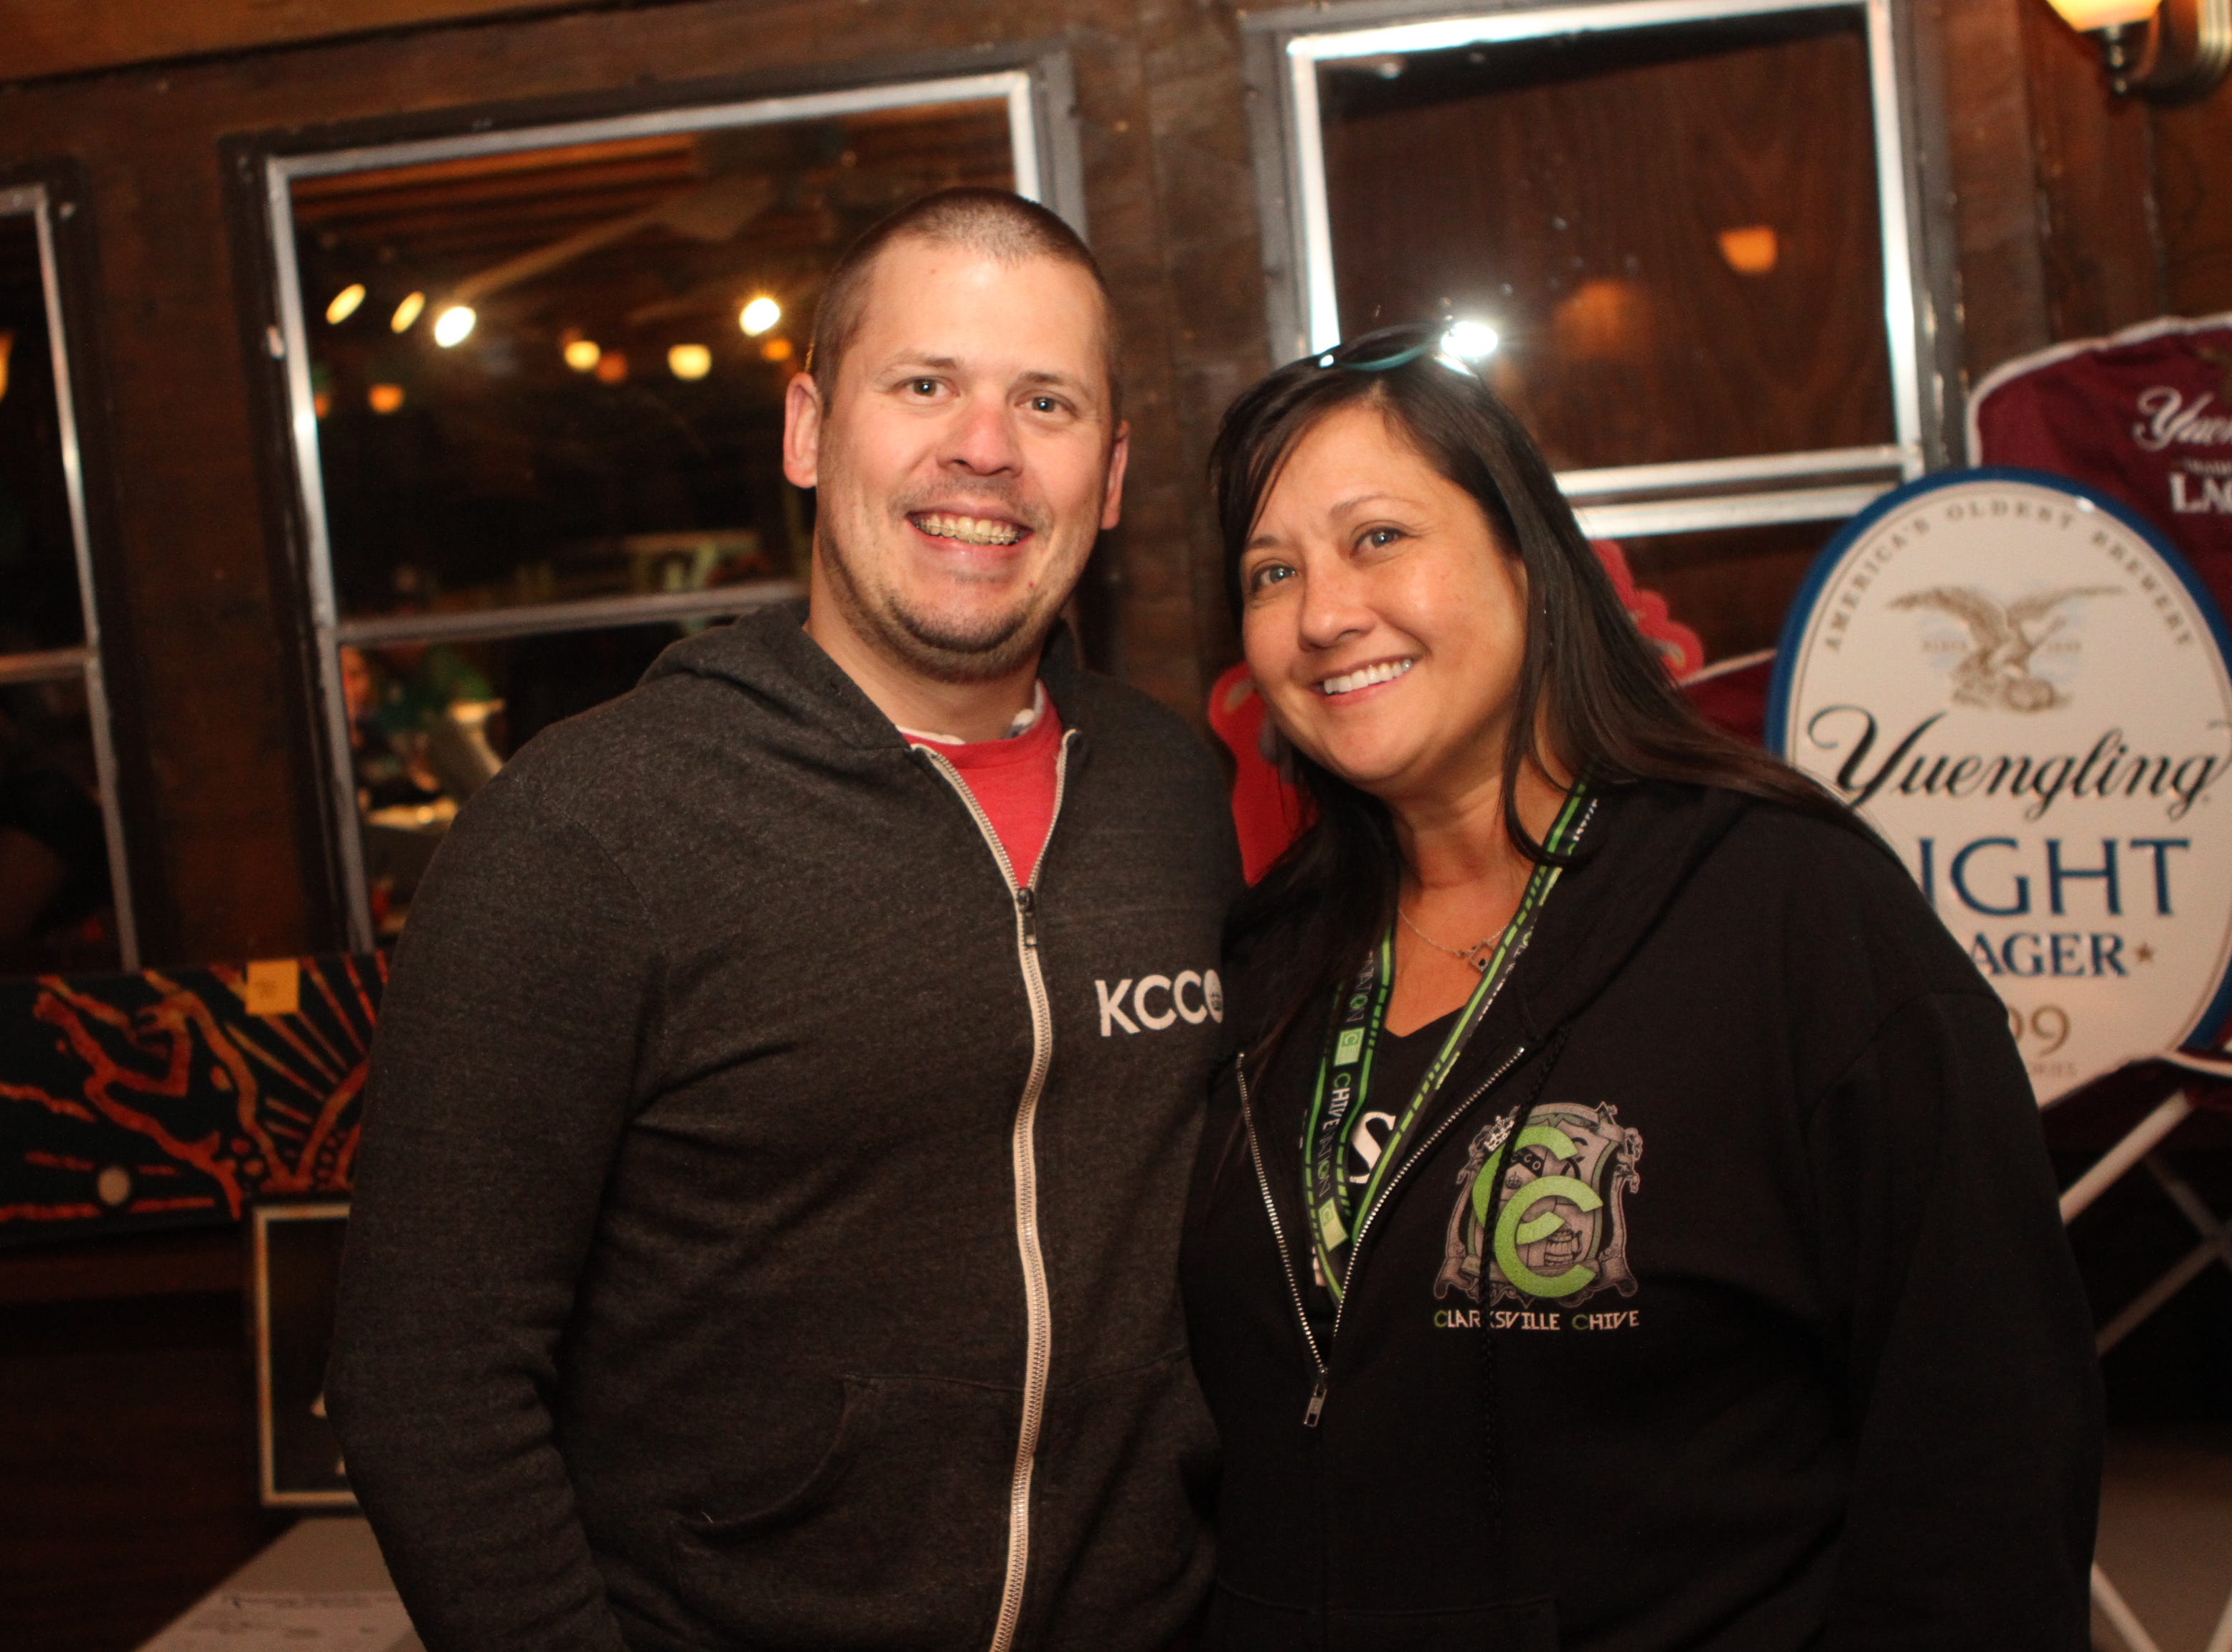 Clarksville Chive's Travis Vanzant and Yolanda Black at Gettin' Stupid For Cupid 3 at O'Connor's on Saturday, October 20, 2018.